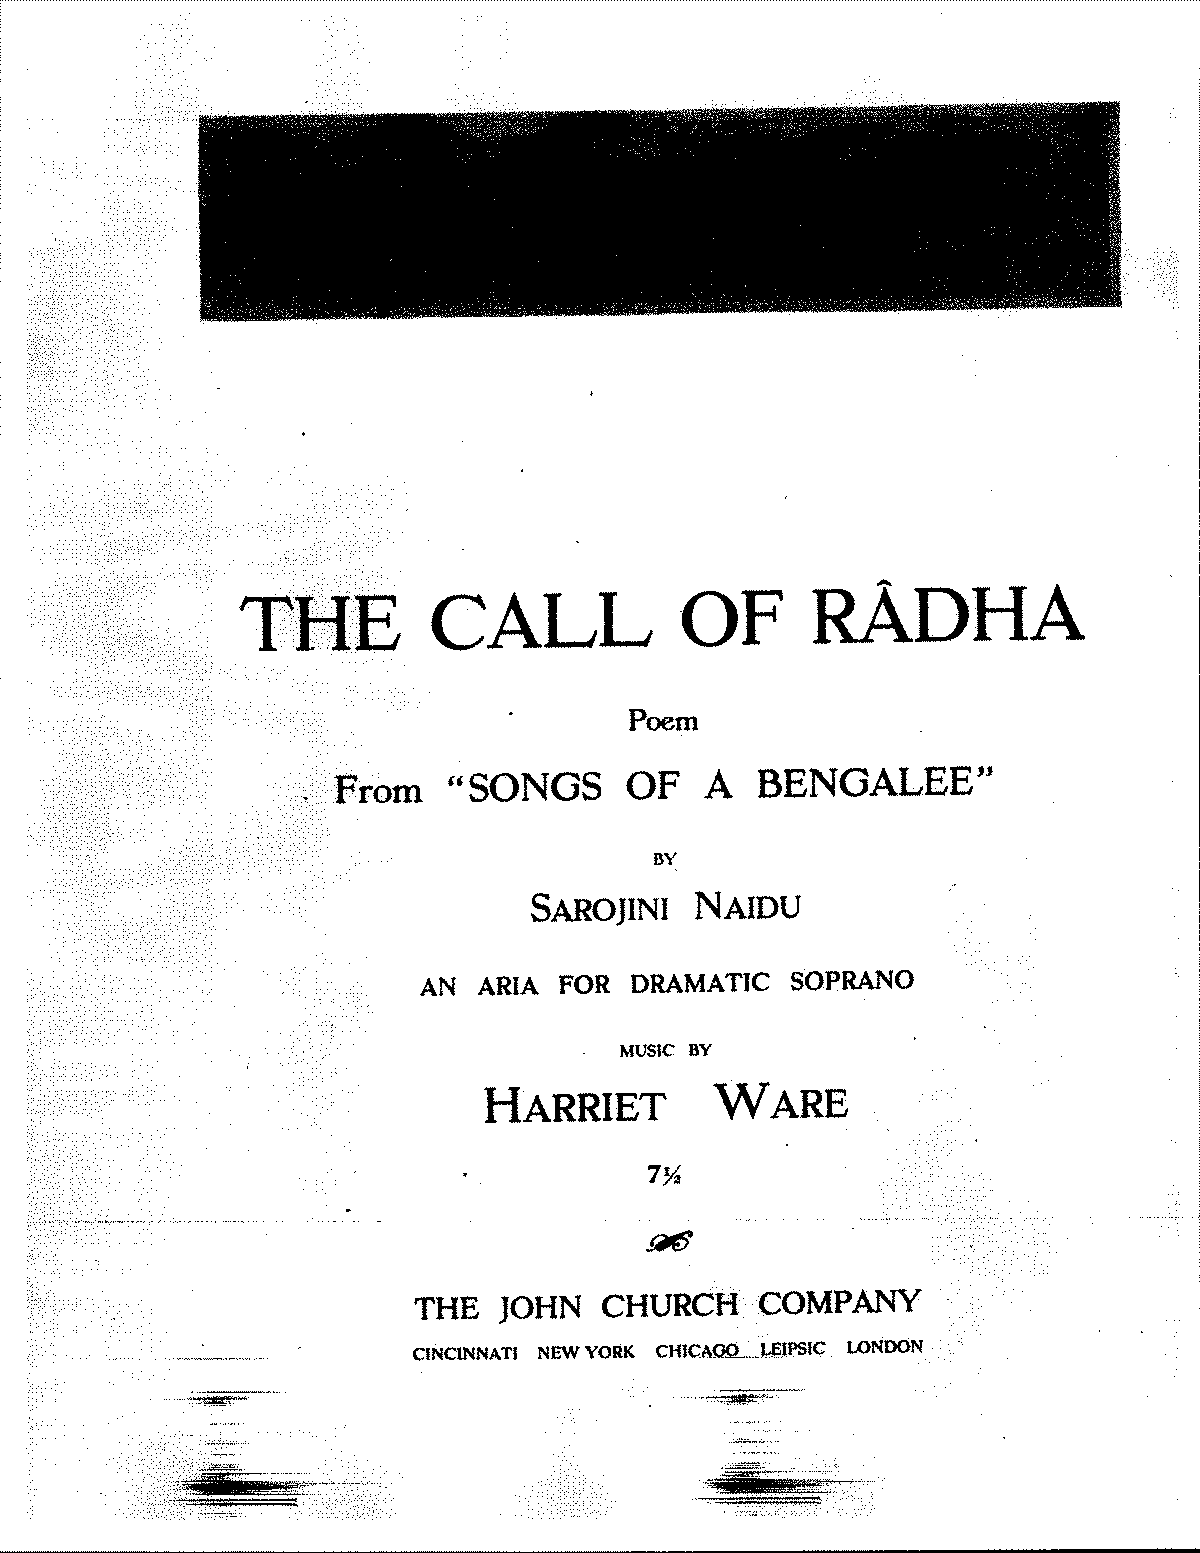 SIBLEY1802.1855.50d2-Ware Call of Radha.pdf